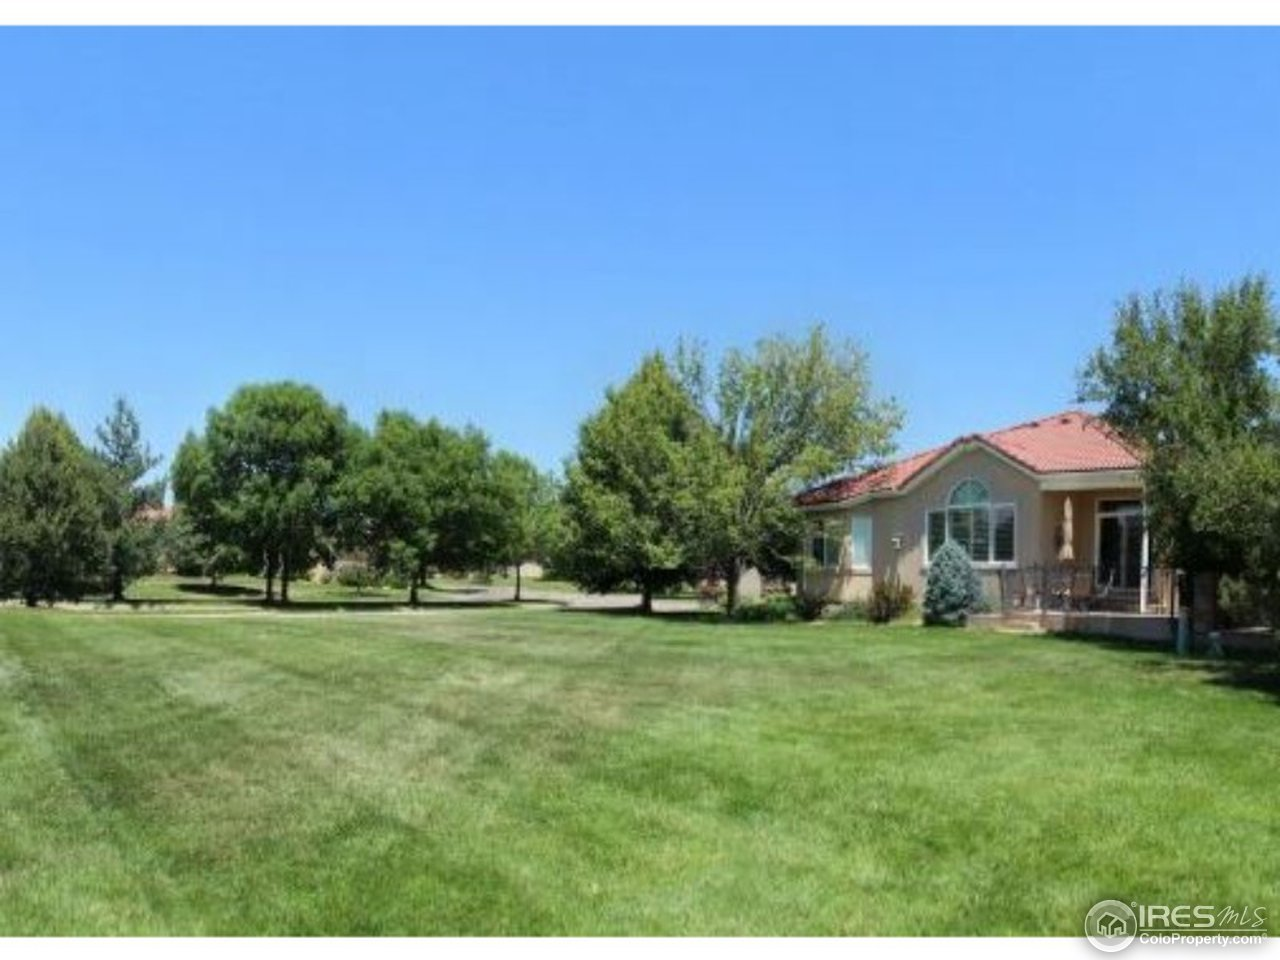 2955 Sonata Bay Ct Loveland Home Listings - Team Cook Real Estate